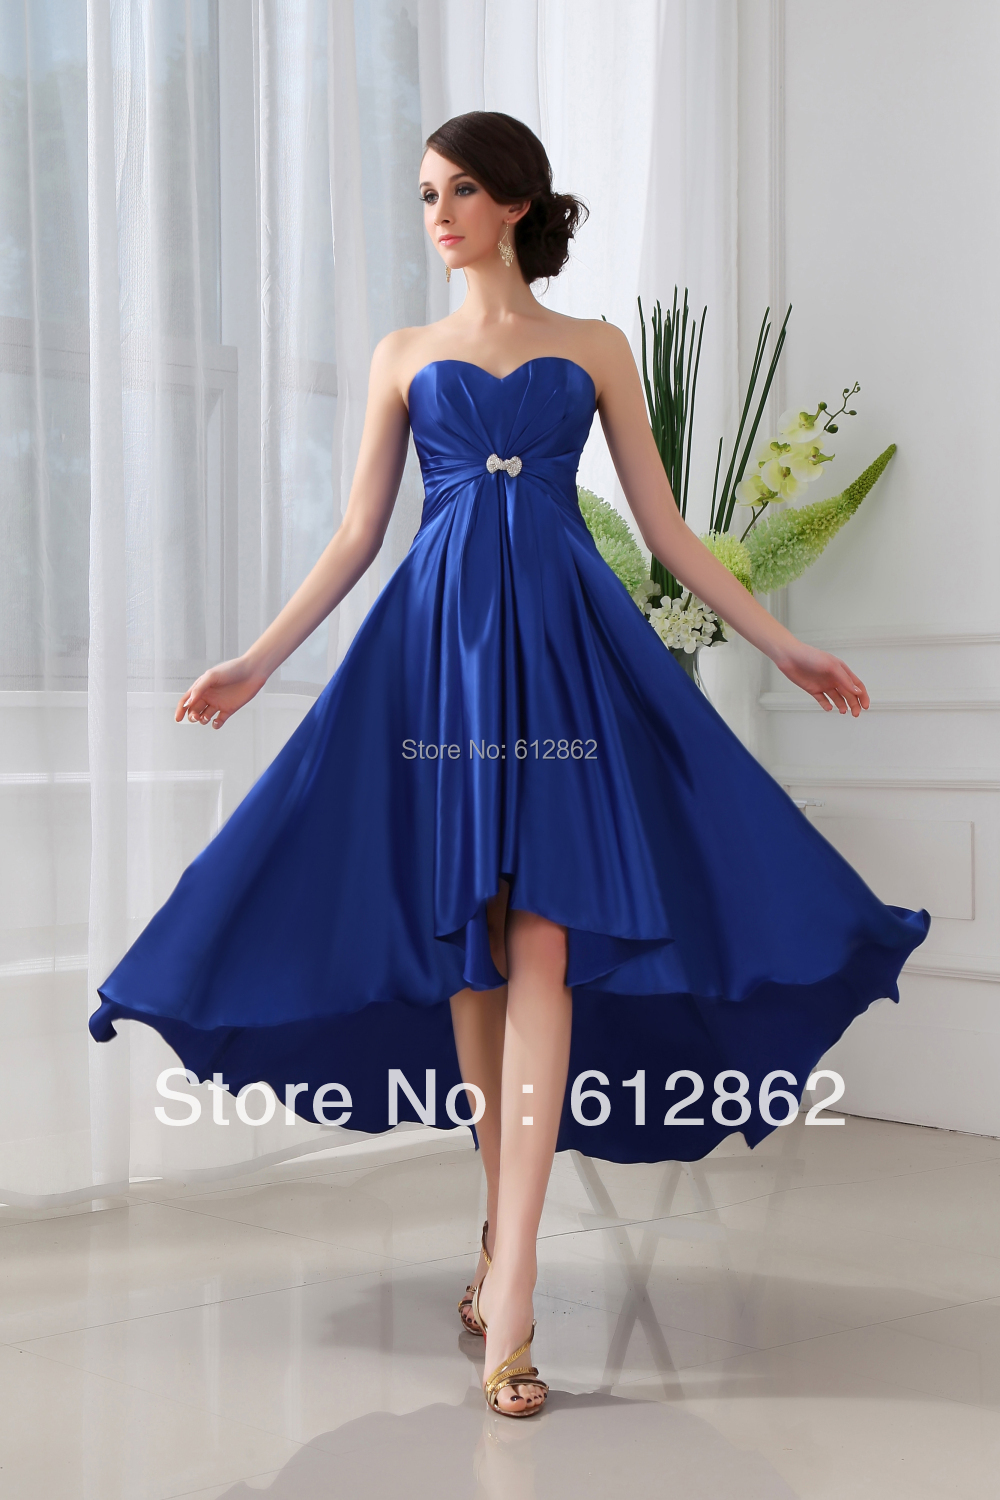 Royal blue bridesmaid dresses cocktail dresses 2016 for Royal blue short wedding dresses